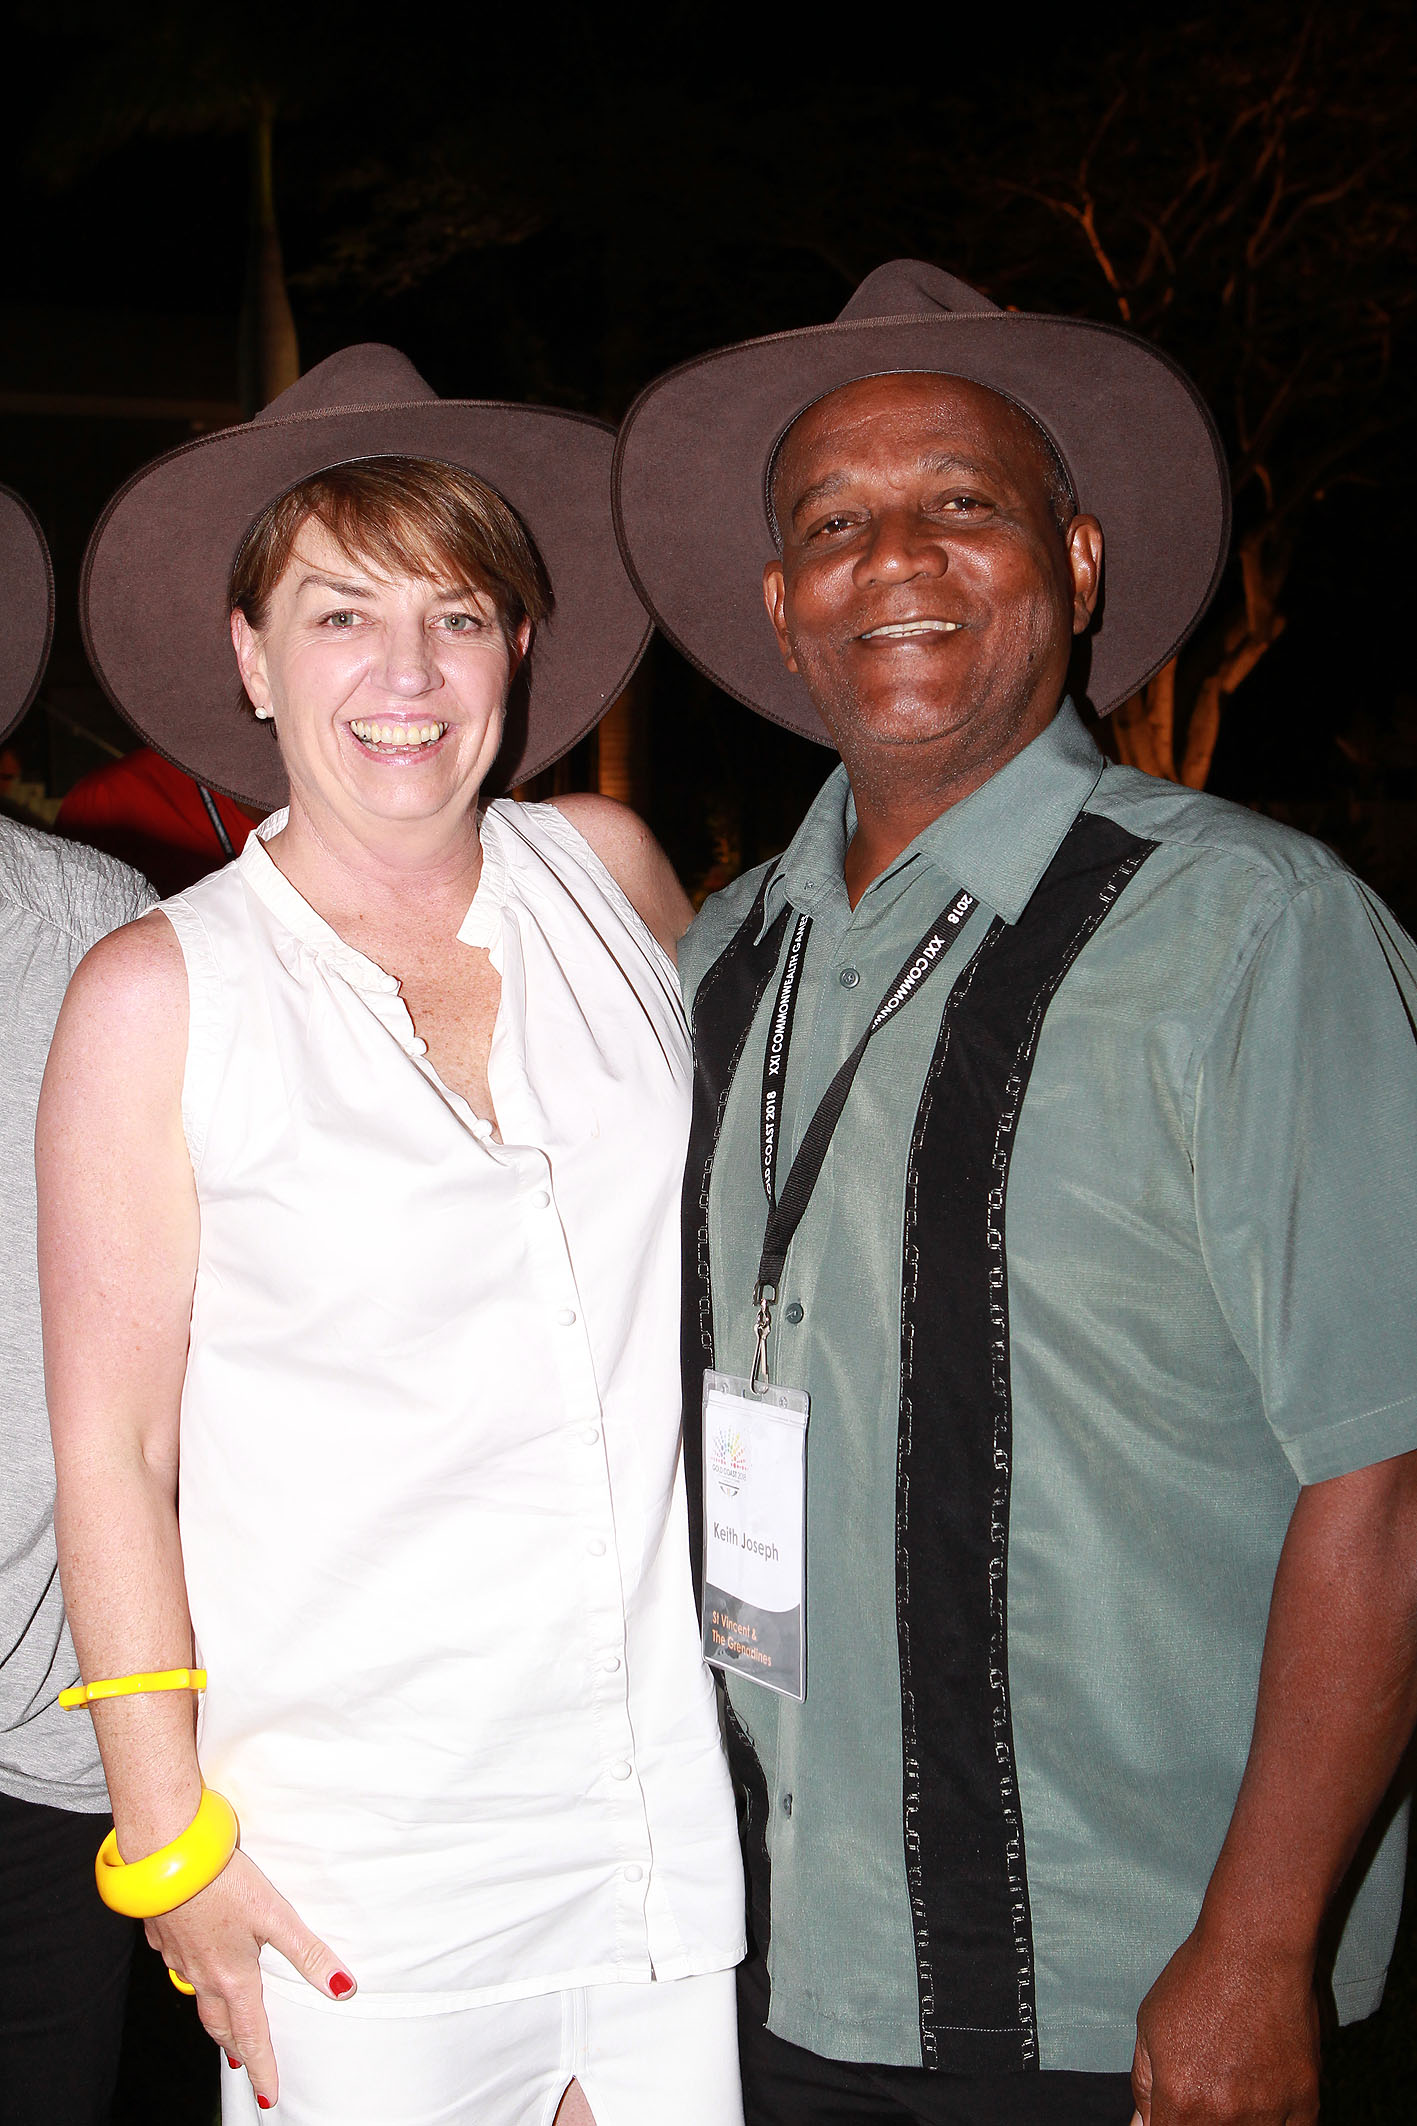 Premier_Anna_Bligh_and_CGA_from_St_Vincent_and_the_Grenadines_Keith_Joseph_September_2011